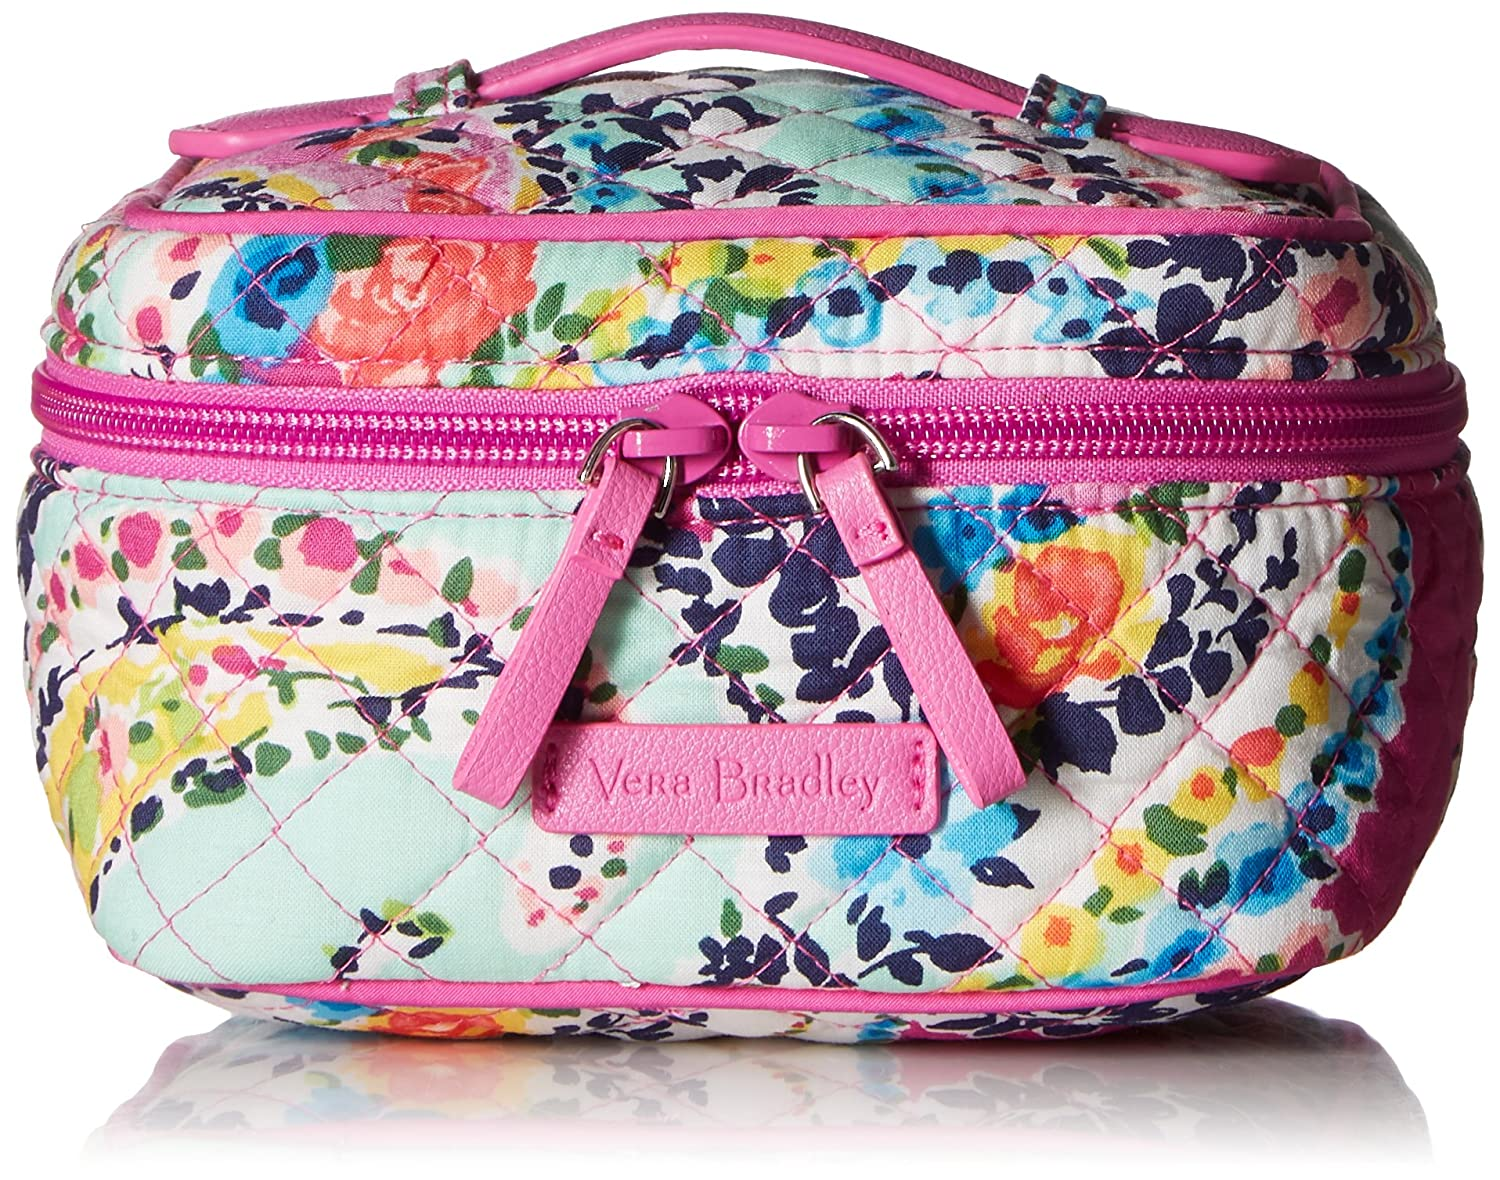 Vera Bradley Iconic Jewelry Case, Signature Cotton by Vera+Bradley